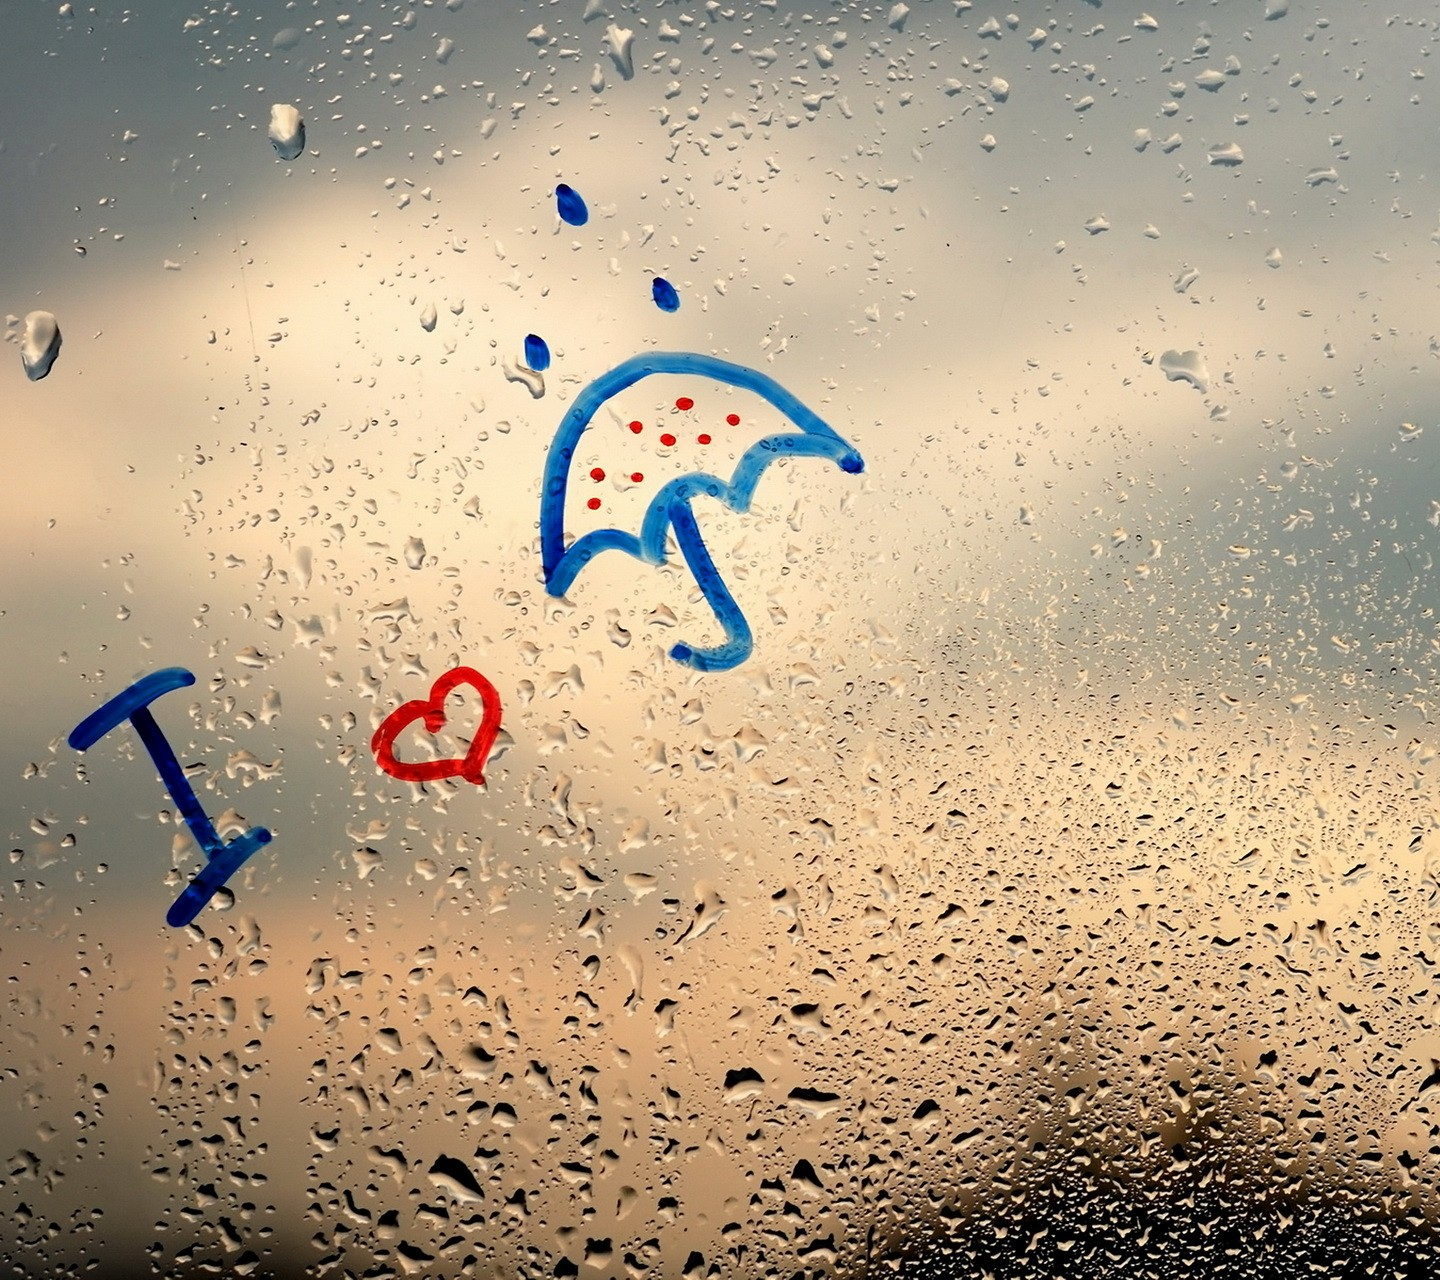 Rain Love Wallpaper Desktop : I Love Rain, HD Artist, 4k Wallpapers, Images, Backgrounds, Photos and Pictures